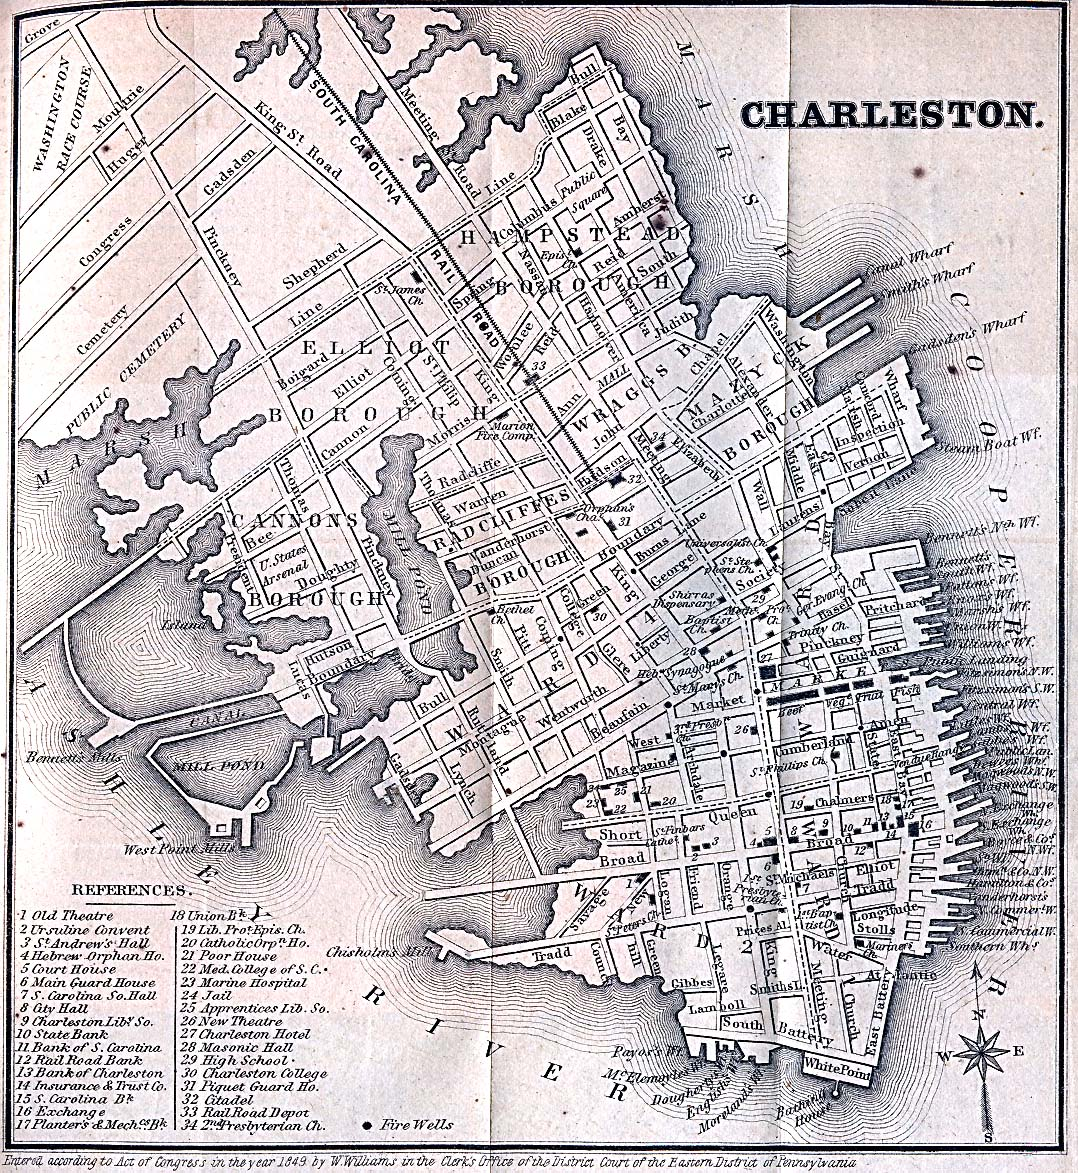 Historical Maps of U.S Cities. Charleston, South Carolina 1849 Appletons' Hand-Book of American Travel. New York: D. Appleton and Company. 1869 (629K)